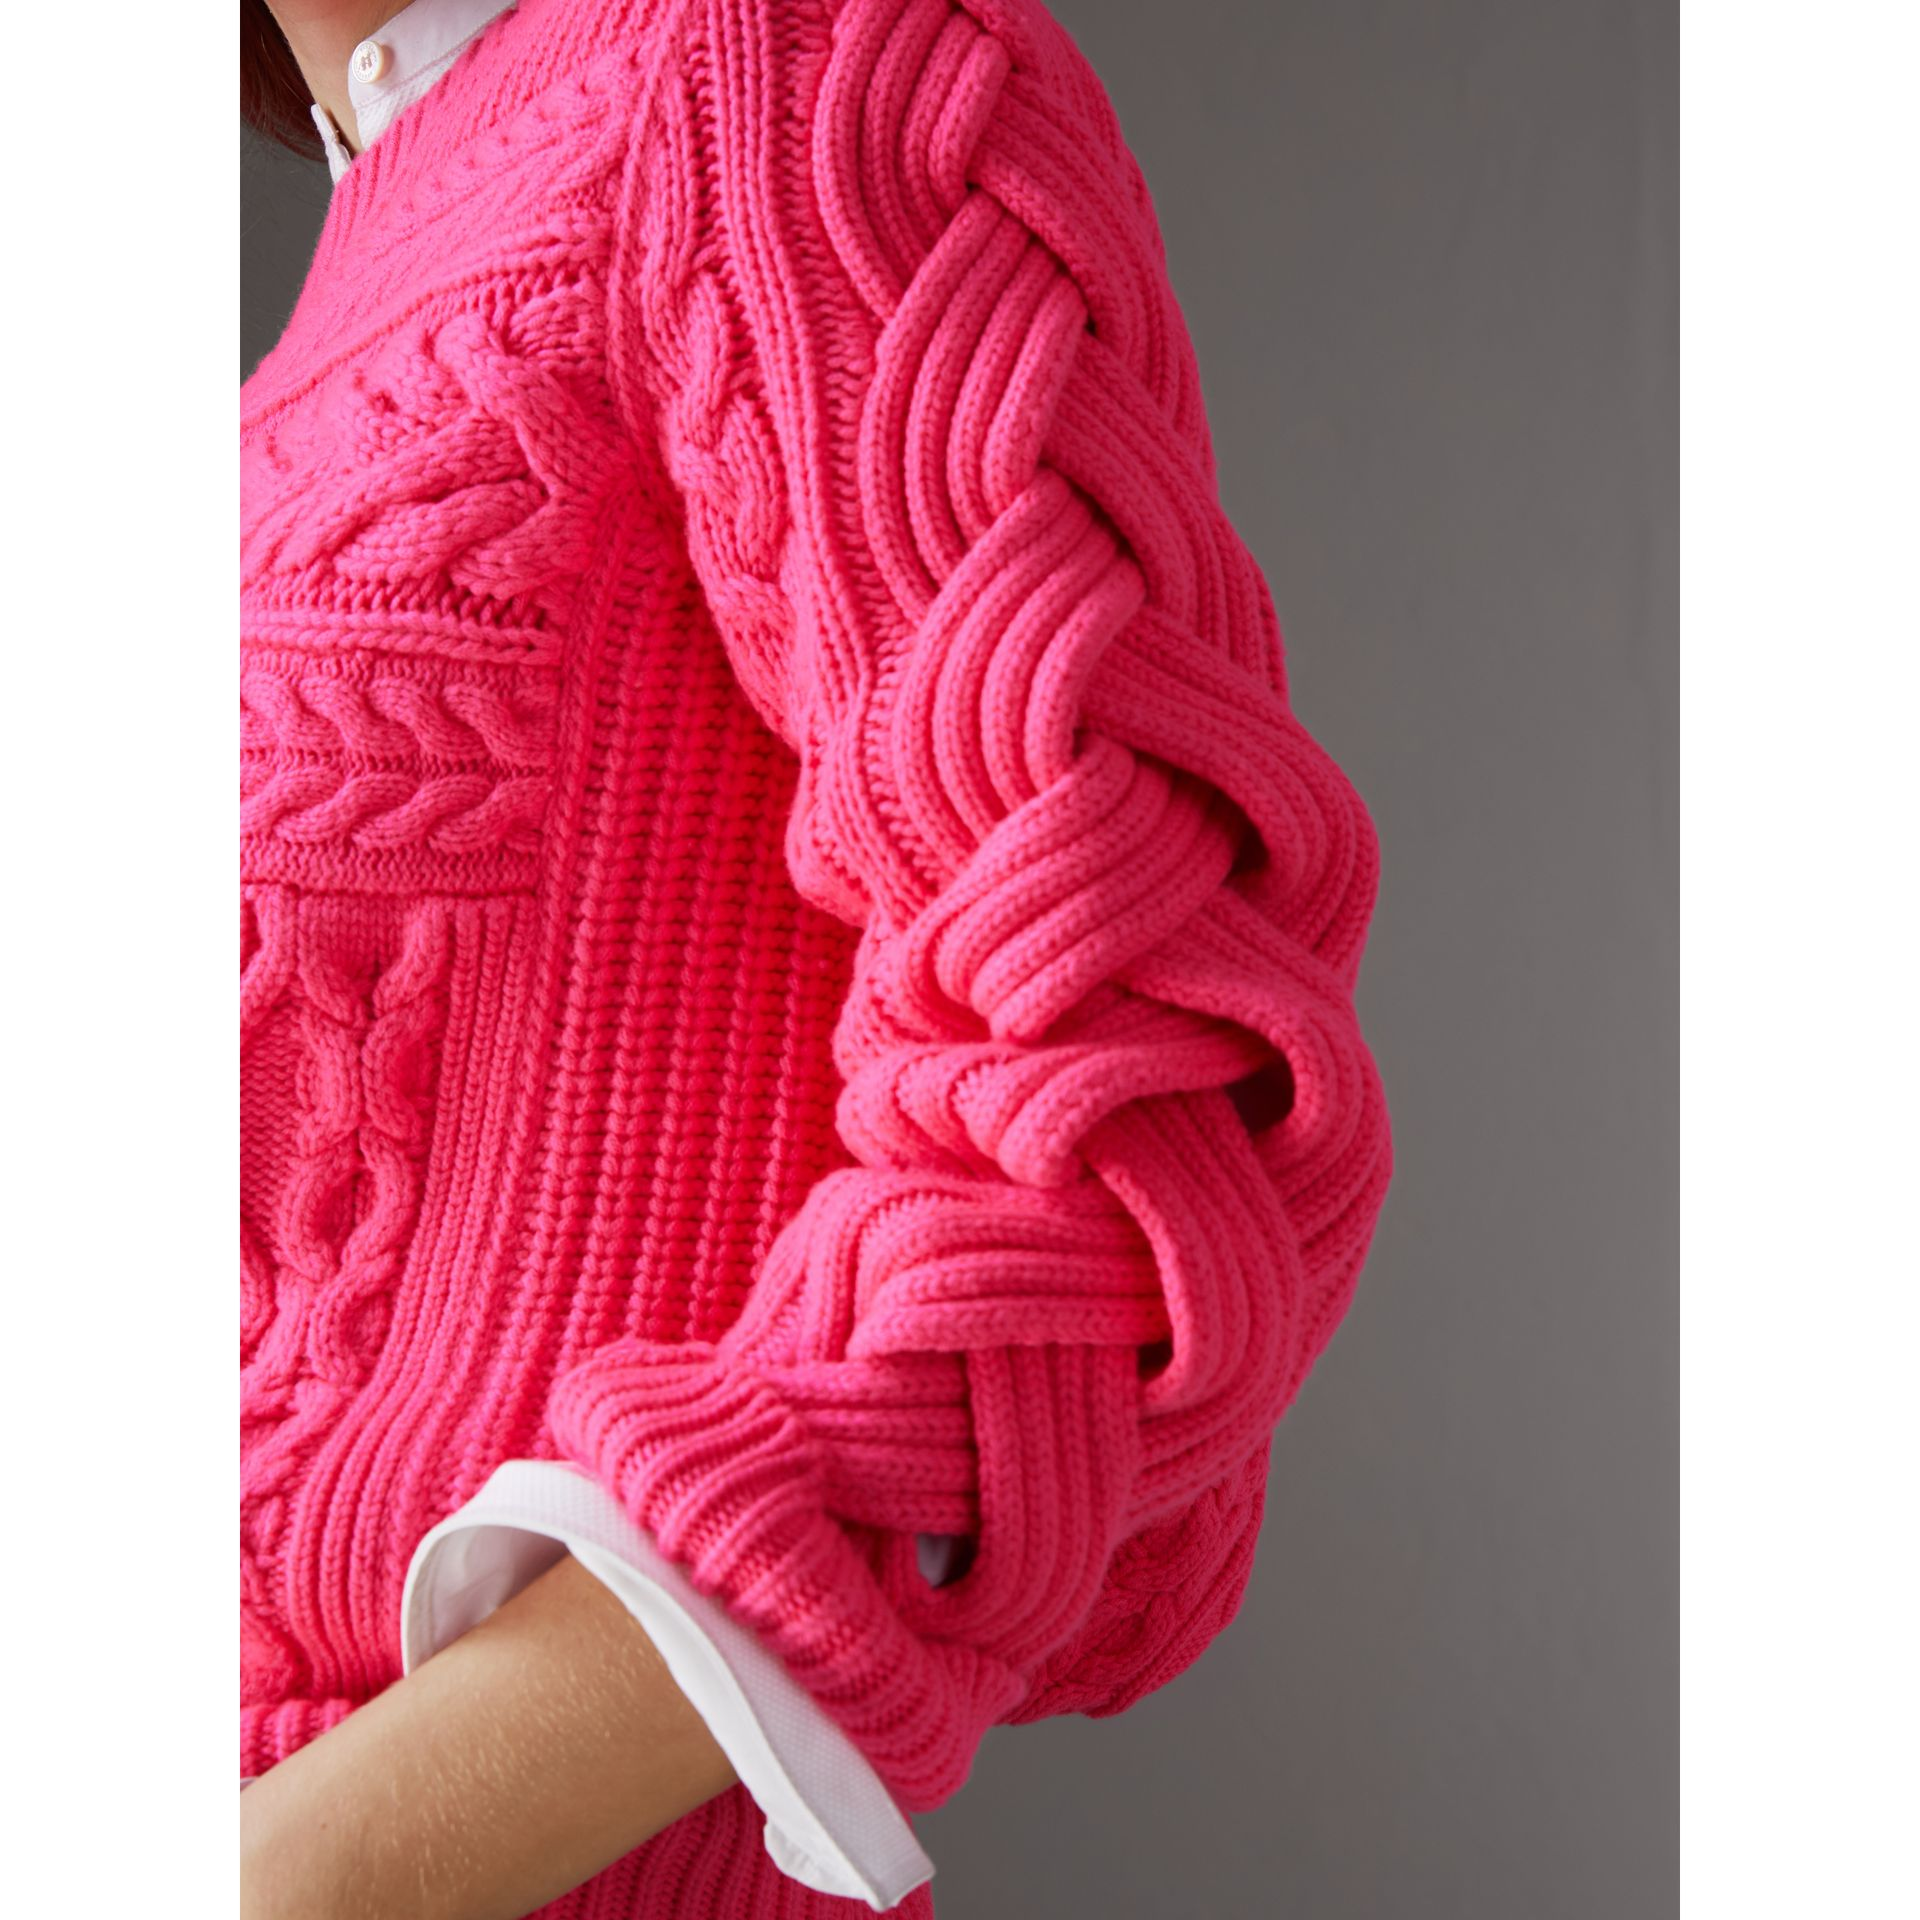 Aran Knit Wool Cashmere Sweater in Bright Rose Pink - Women | Burberry United Kingdom - gallery image 1